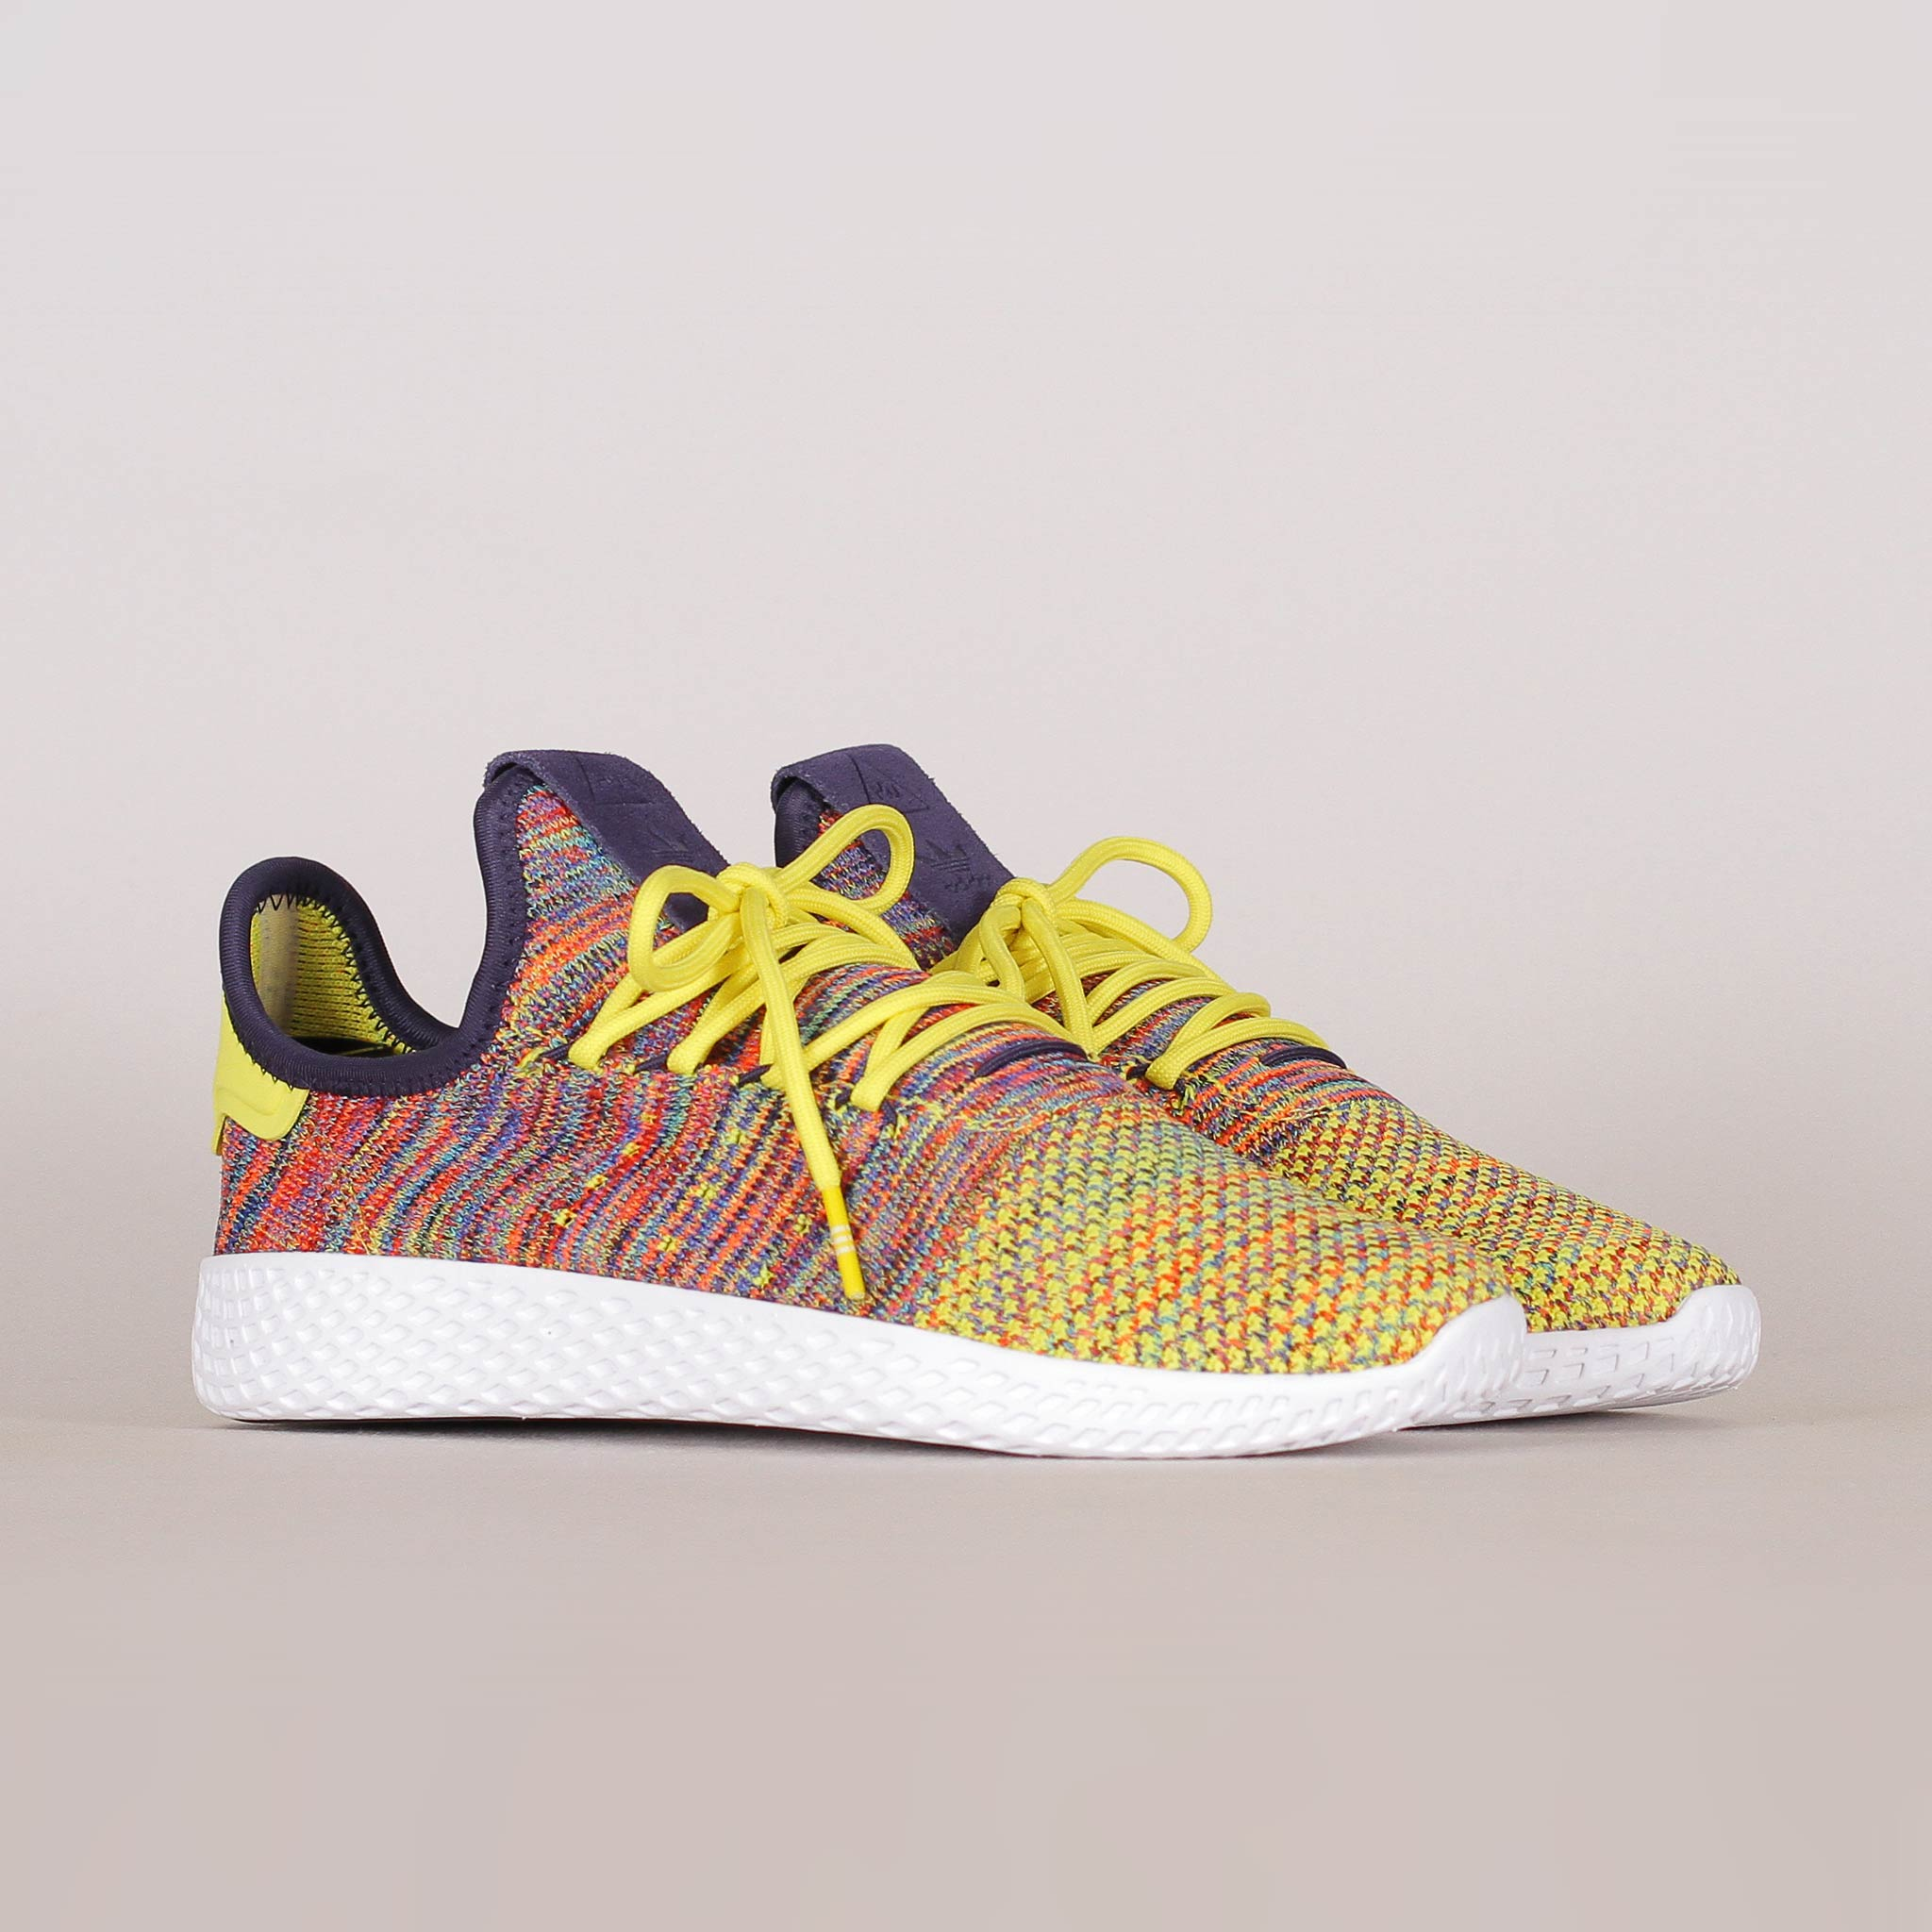 Now Available: Pharrell x adidas Originals